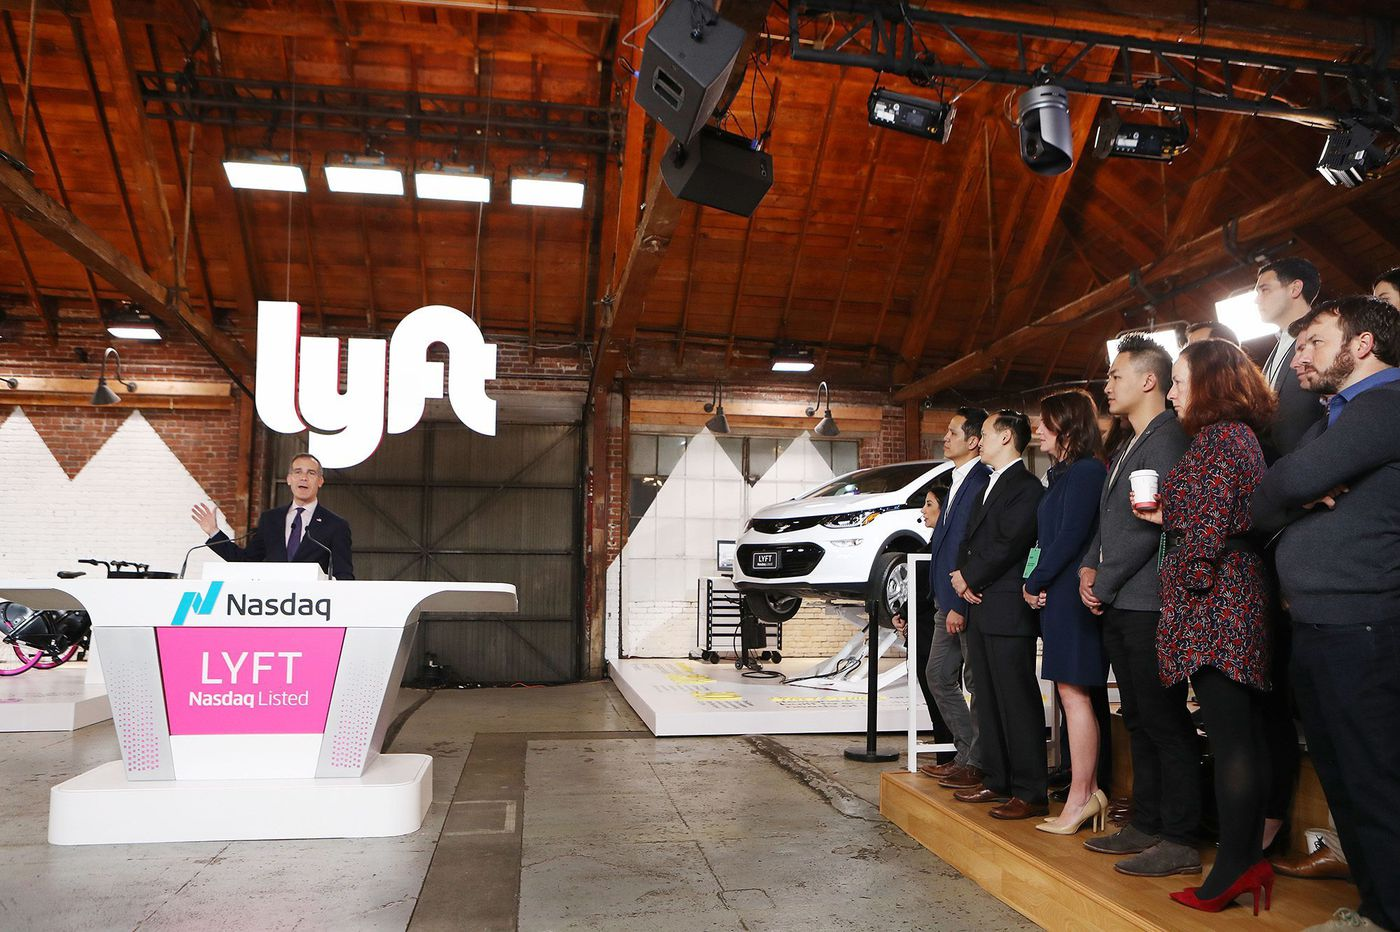 Lyft drops below IPO price as street questions growth path